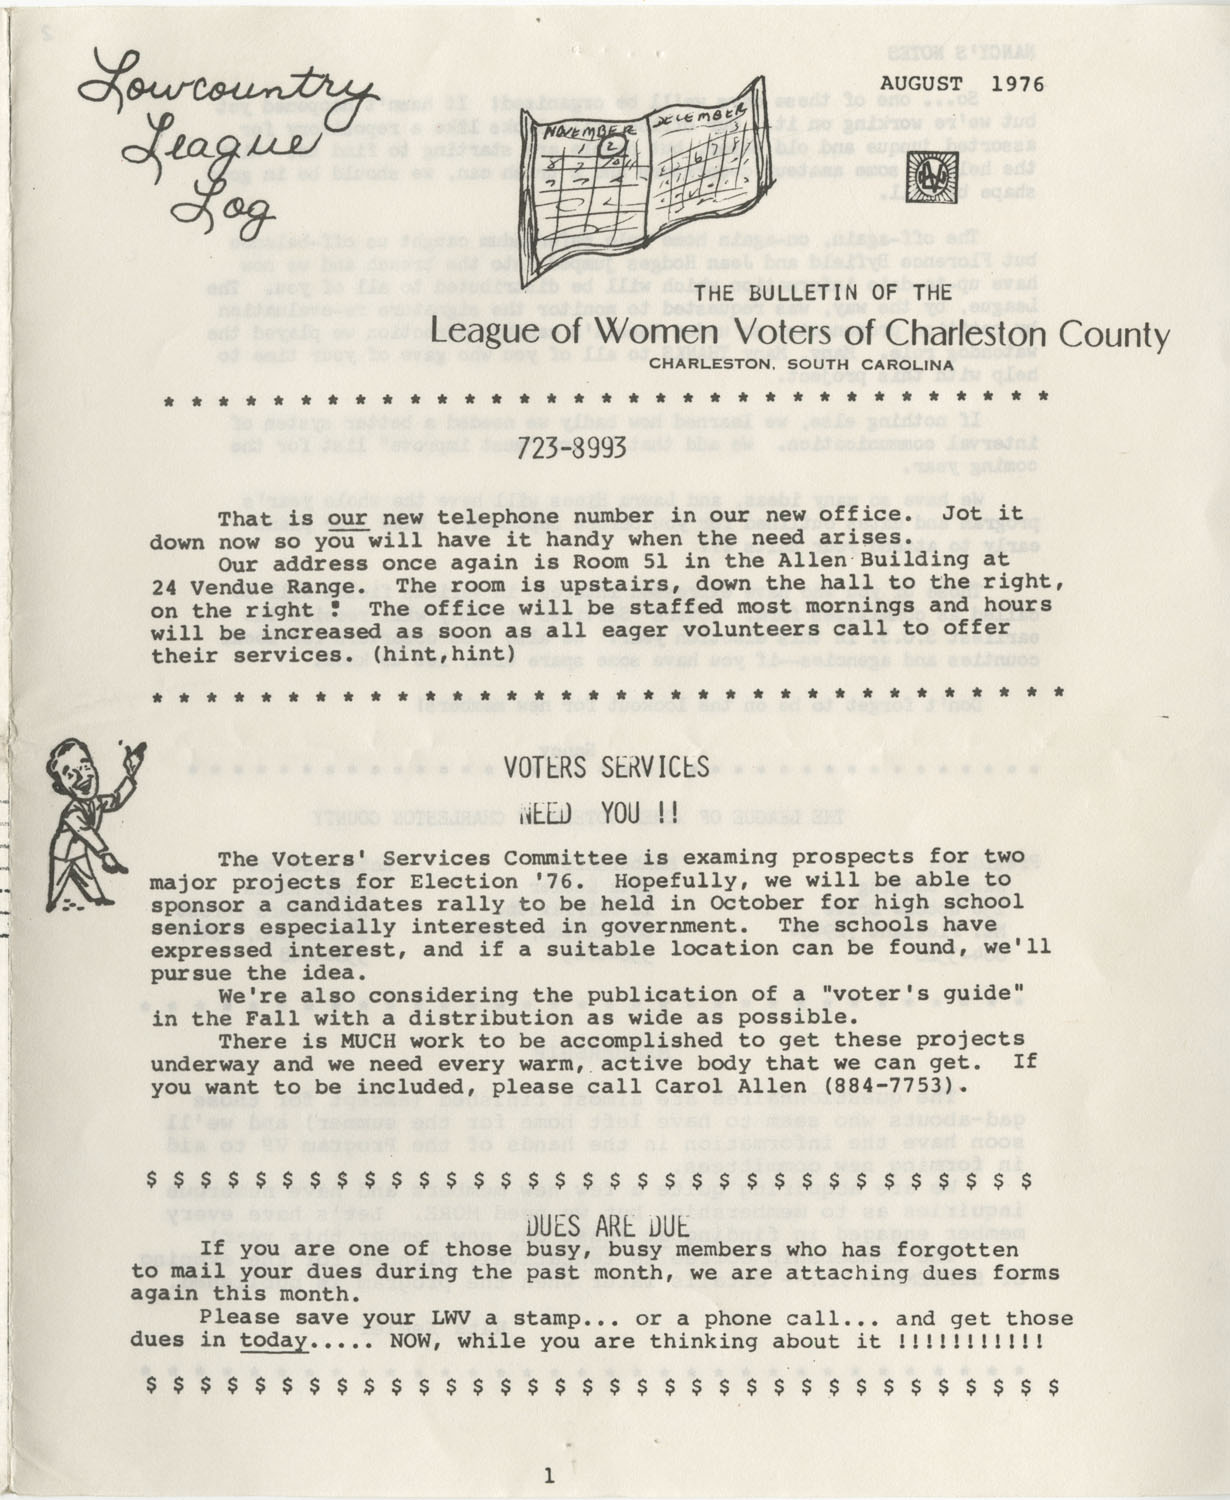 Lowcountry League Log, League of Women Voters of Charleston County Bulletin, August 1976